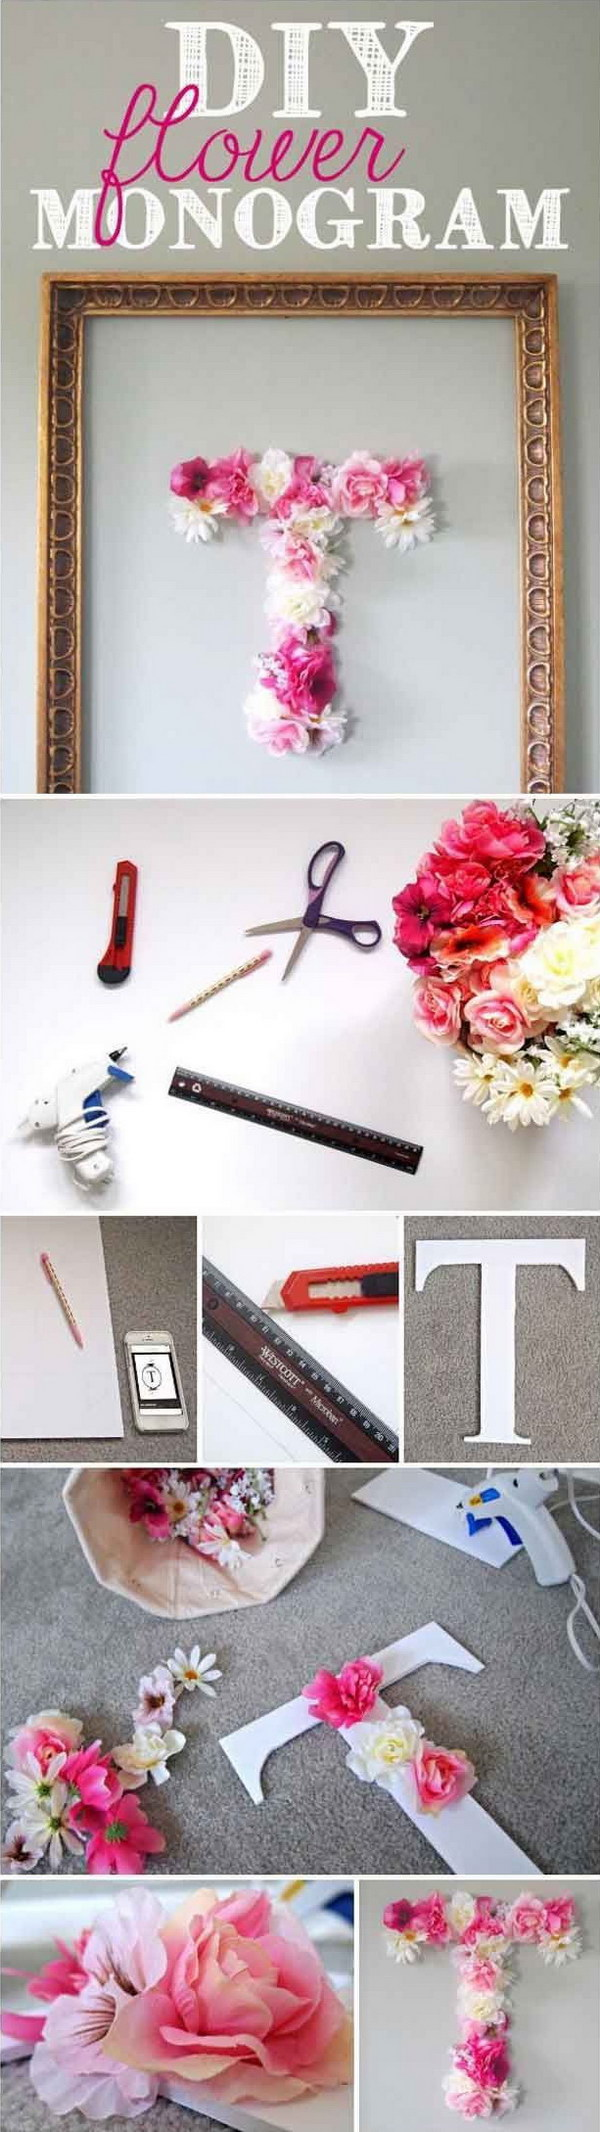 Teen bedroom diy decorating ideas - Diy Flower Monogram